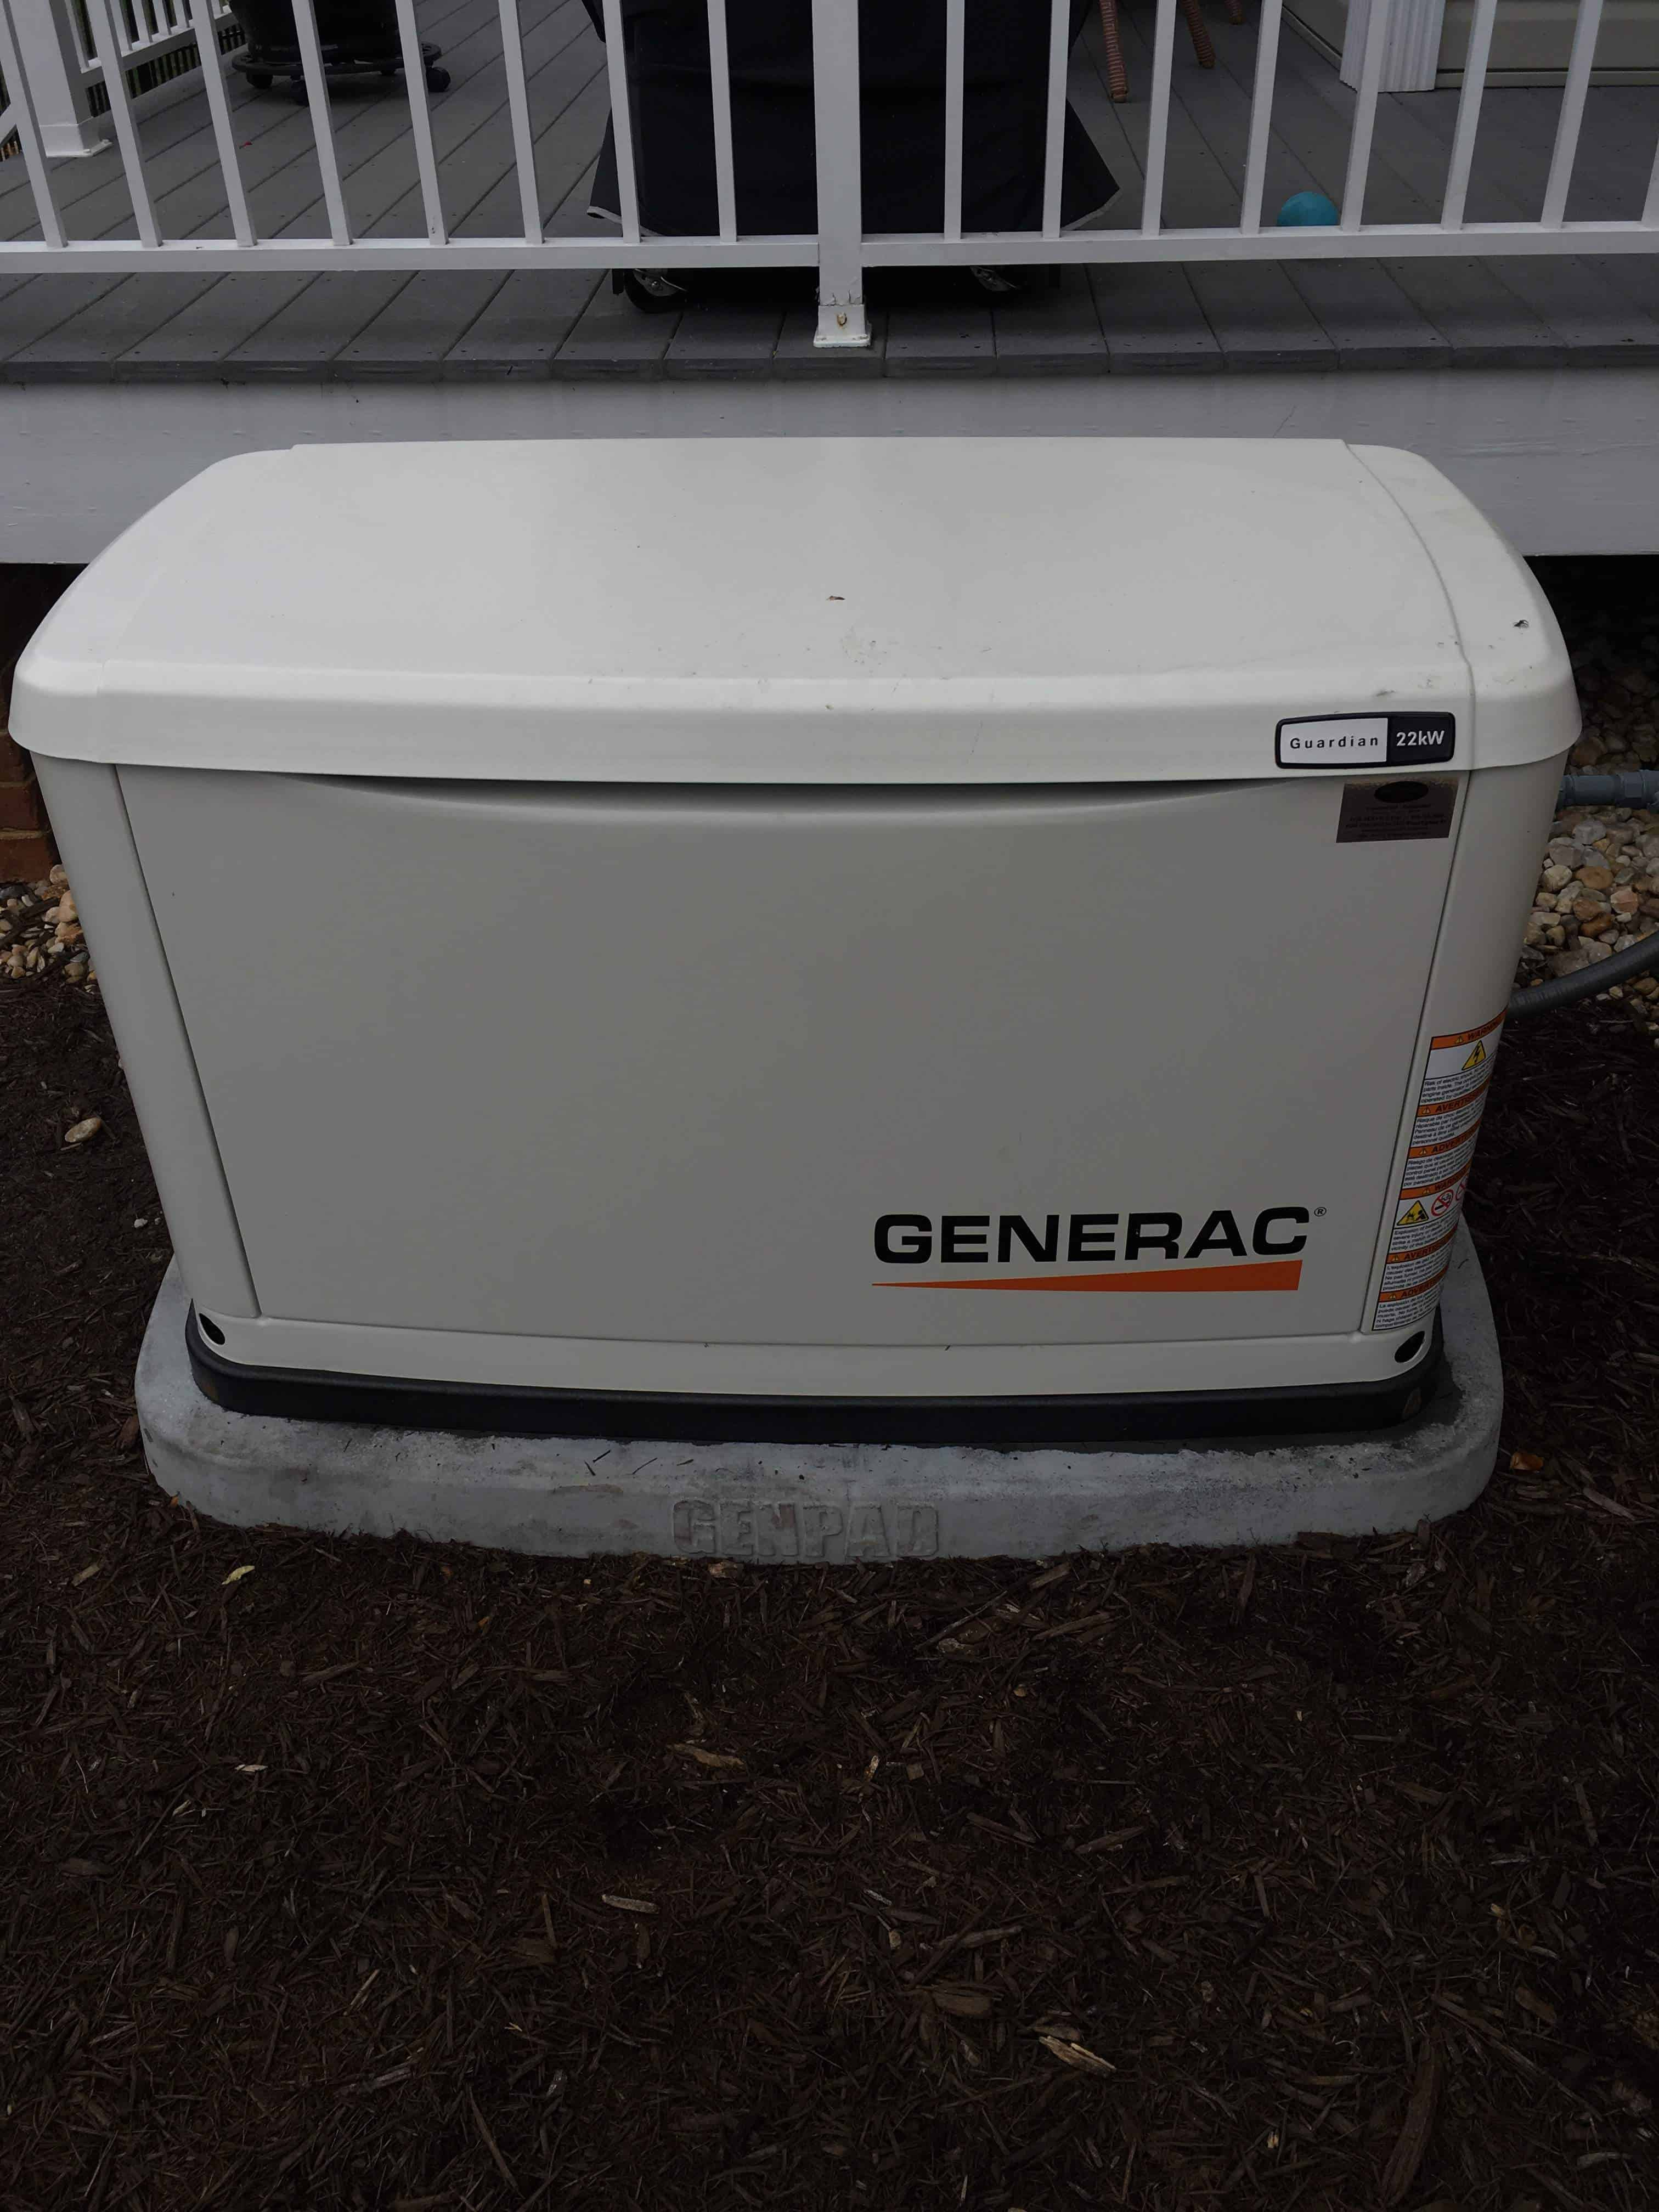 Generac Automatic Standby Generator City of Hopewell